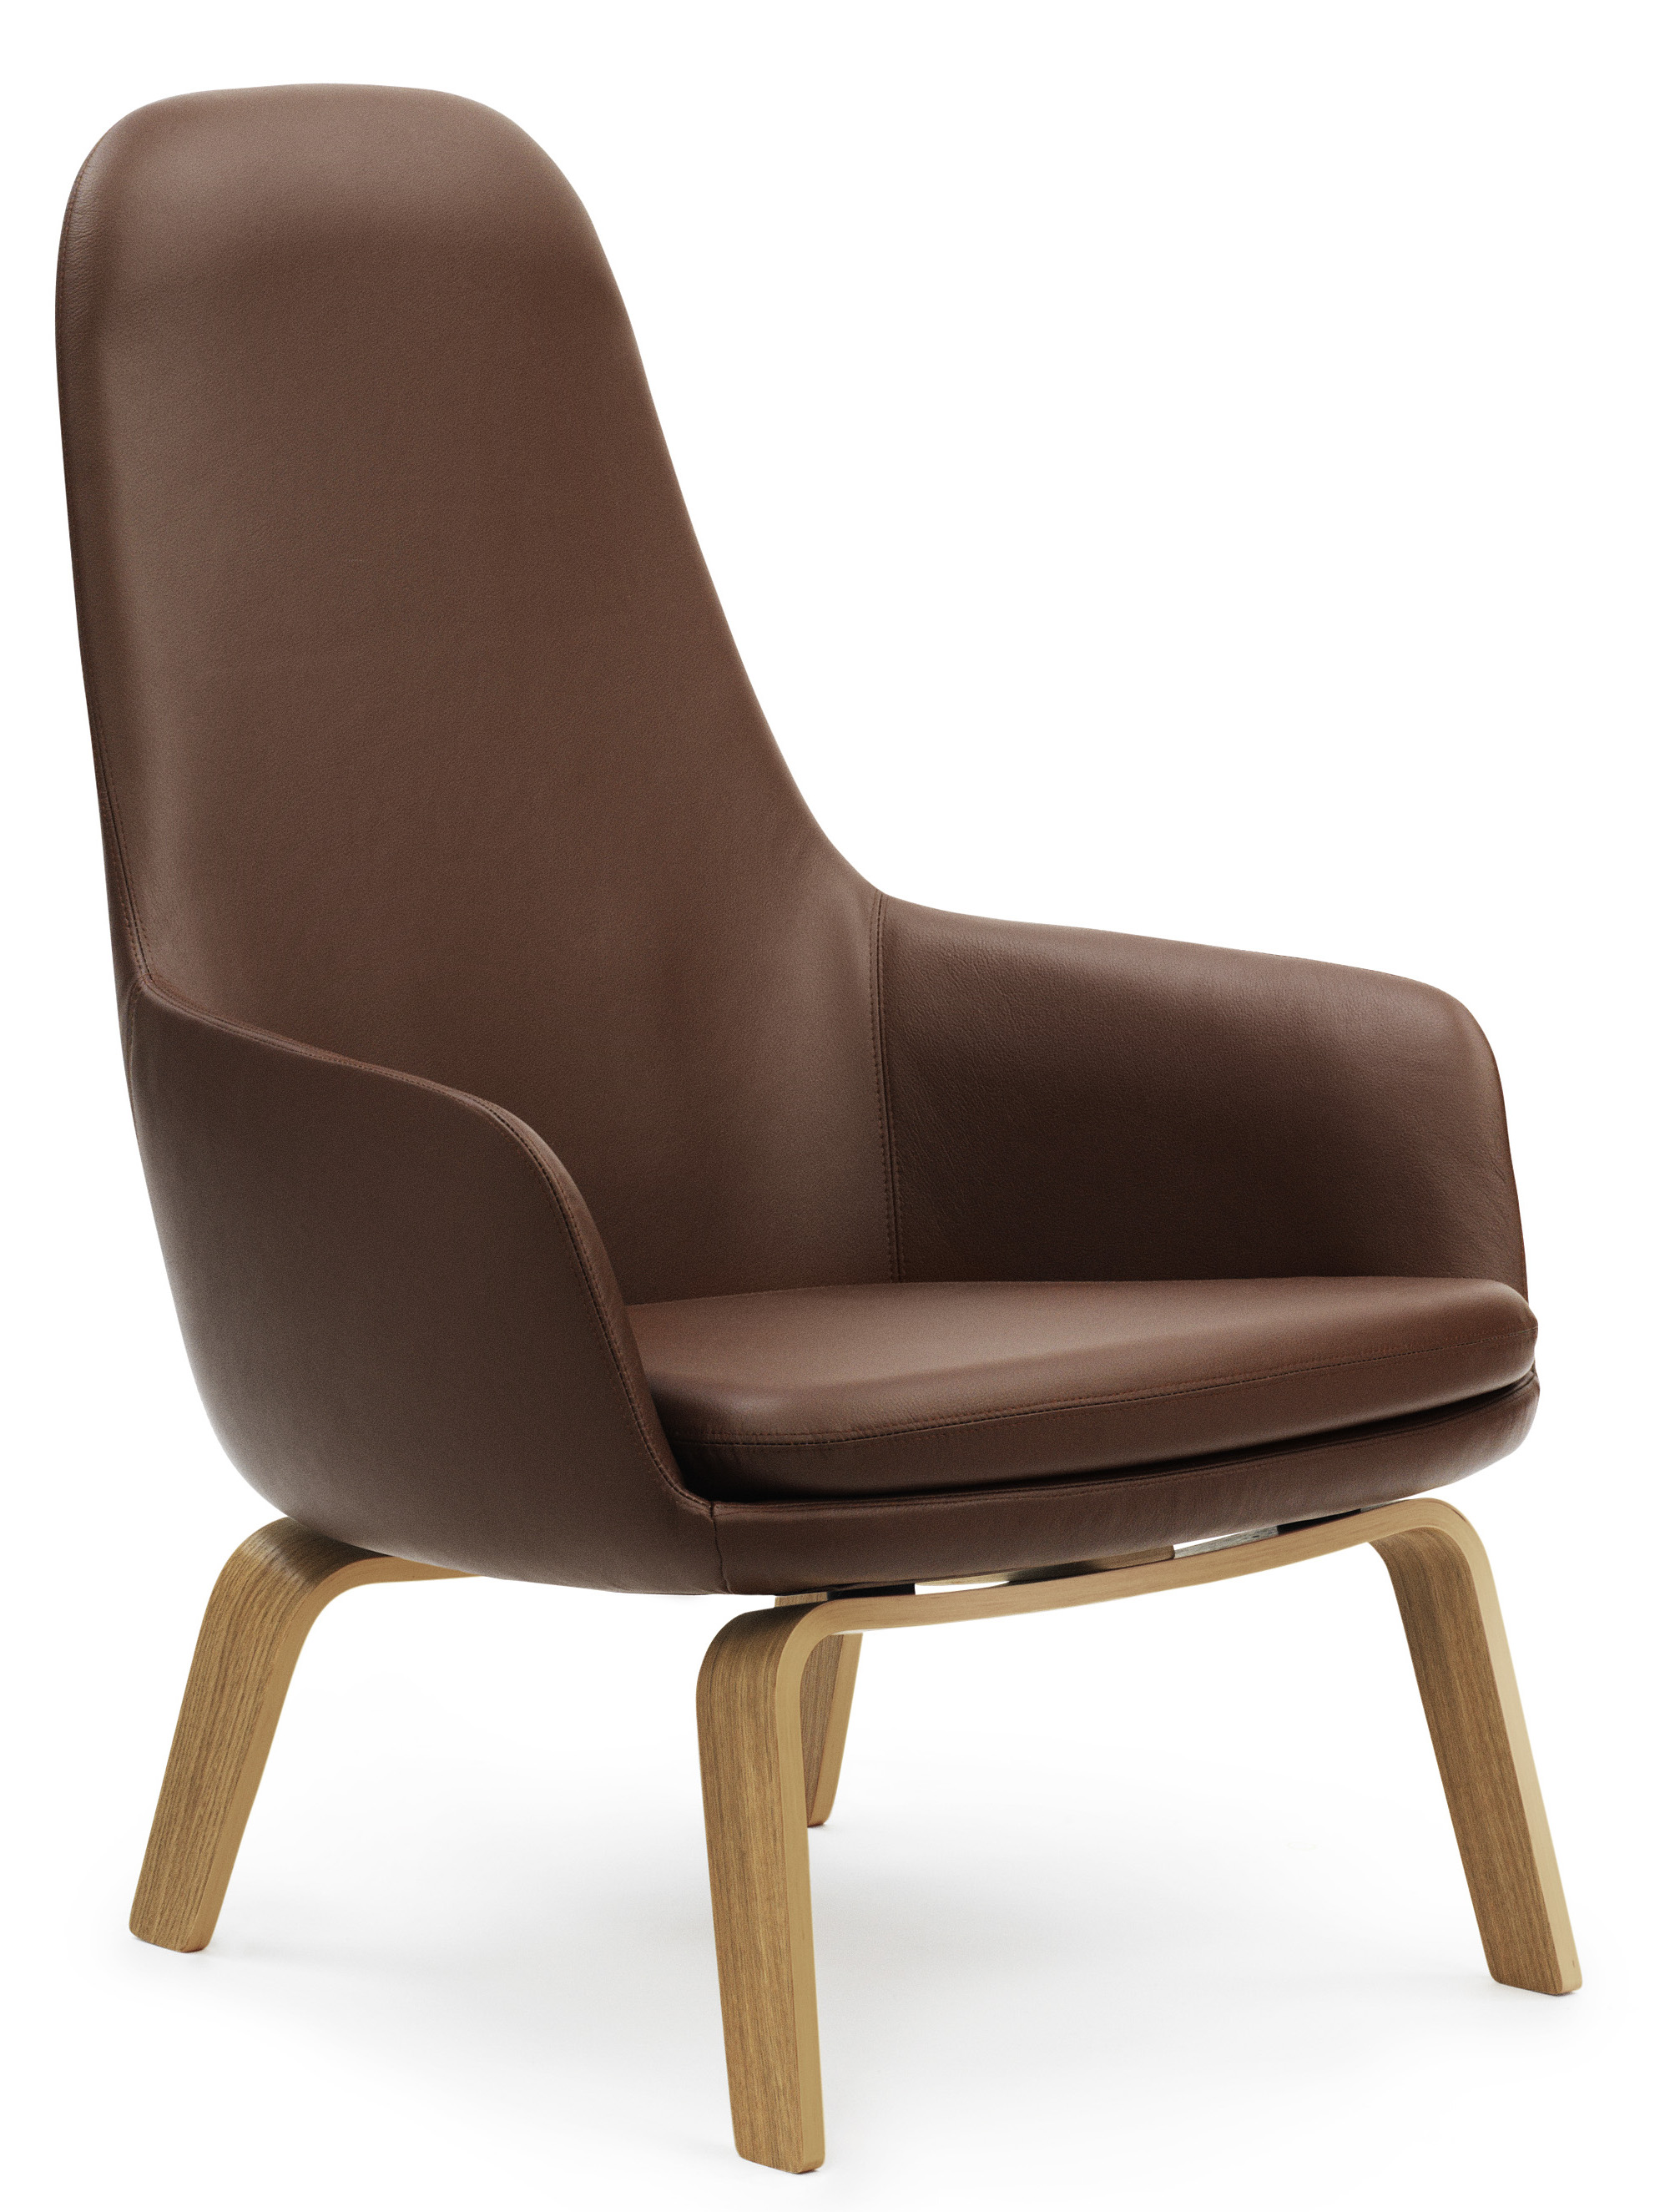 Normann Copenhagen Era Lounge Chair High Back Wooden